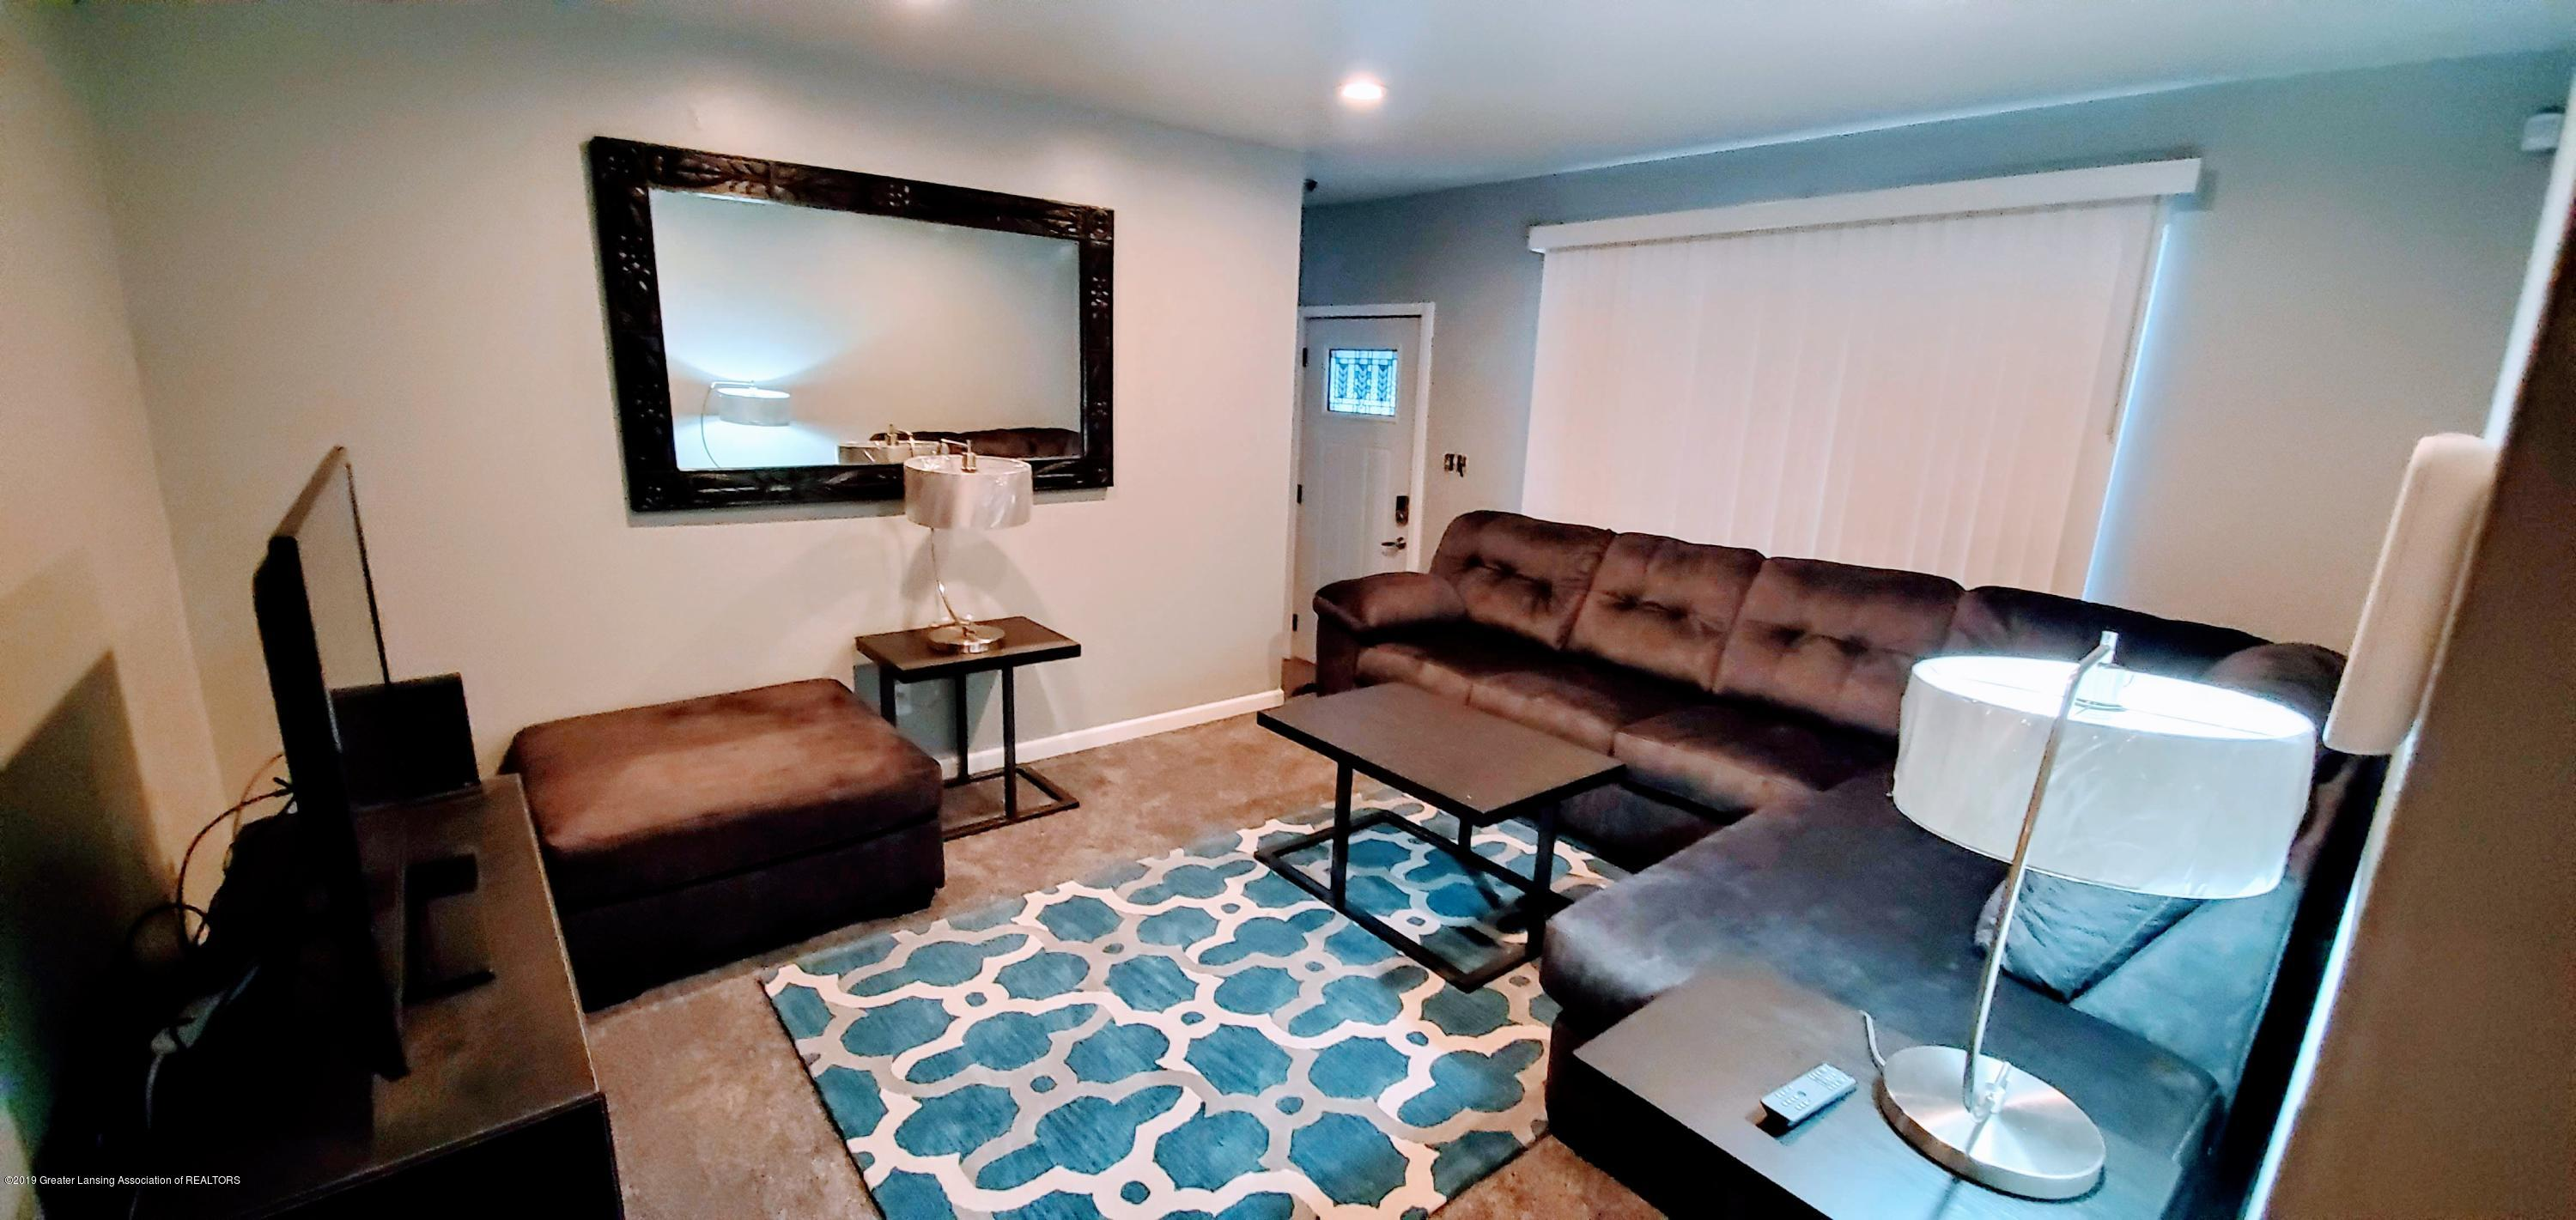 3924 Wedgewood Dr - Living Room - 3